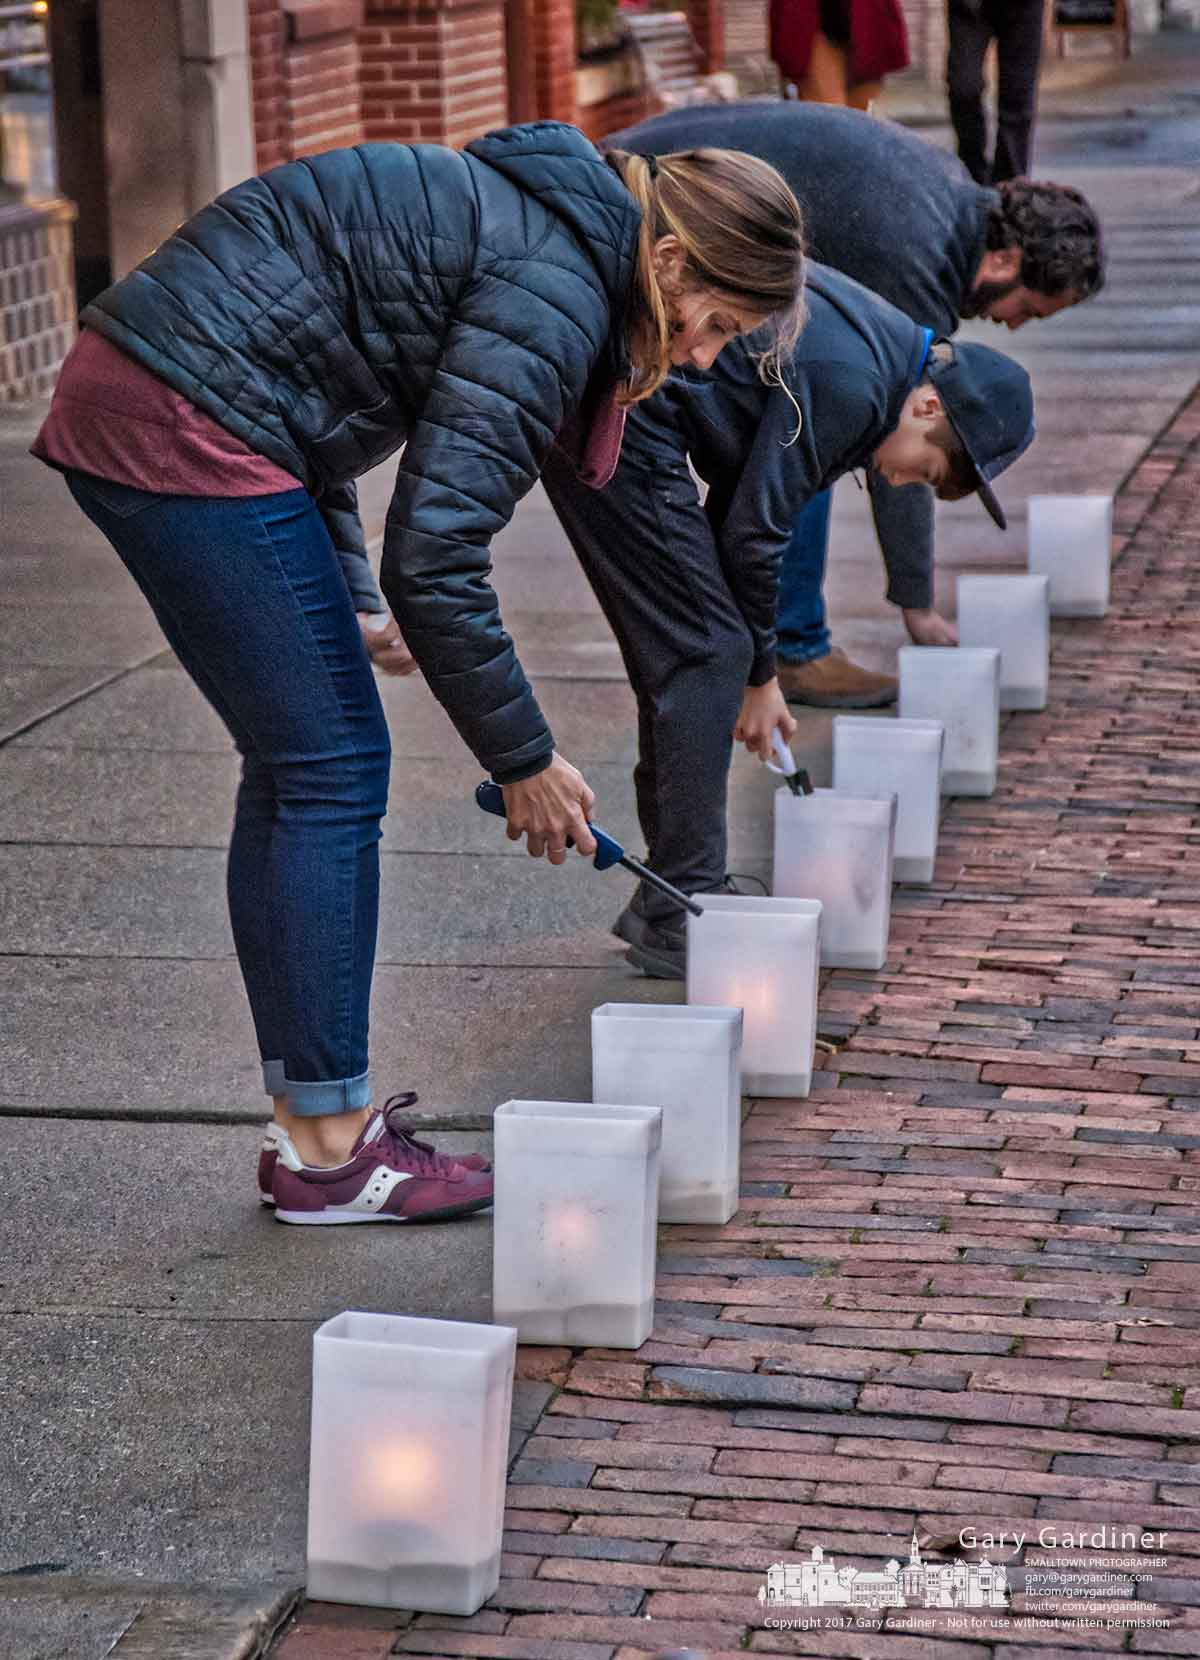 Three of the Qualls family light luminaries on the sidewalks in Uptown Westerville on the last Friday night before Christmas. My Final Photo for Dec. 22, 2017.